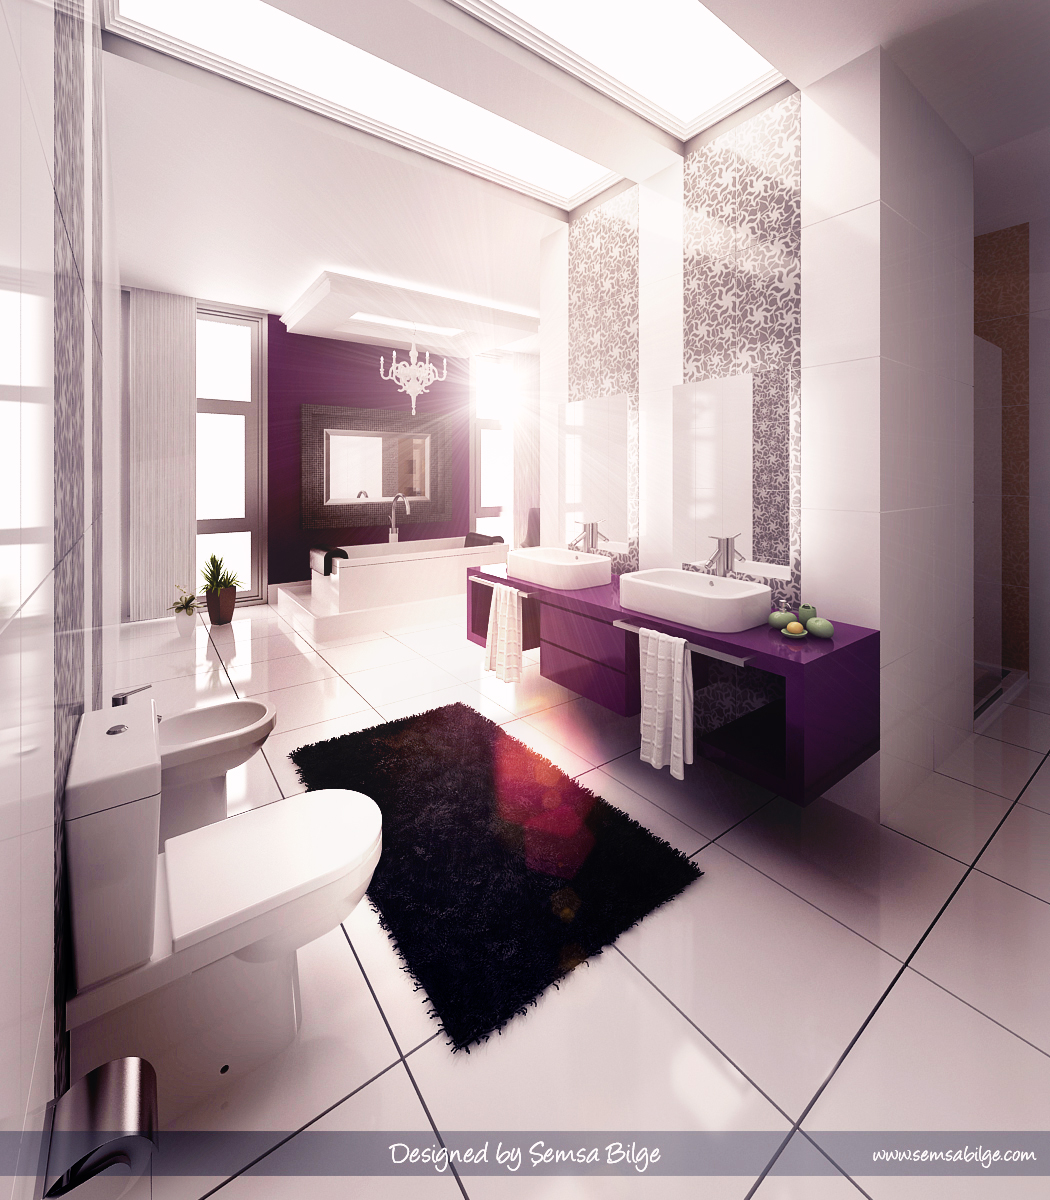 Beautiful bathroom designs ideas interior design for Bathroom decorating ideas pictures